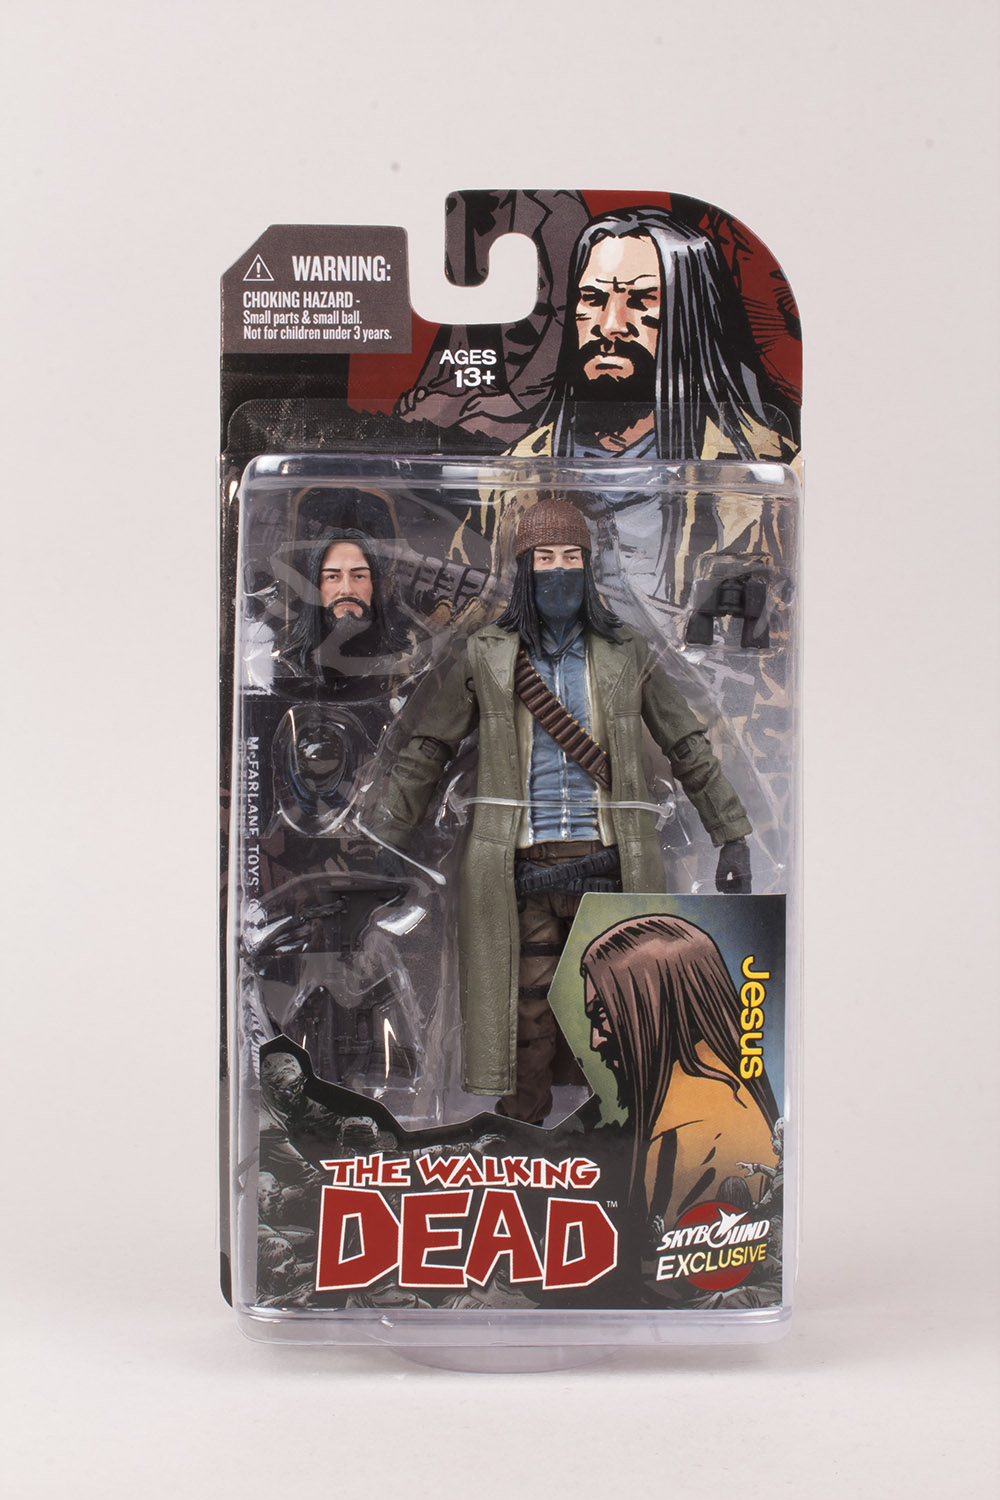 NYCC 2014 Exclusive – The Walking Dead Jesus Action Figure From McFarlane Toys And Skybound